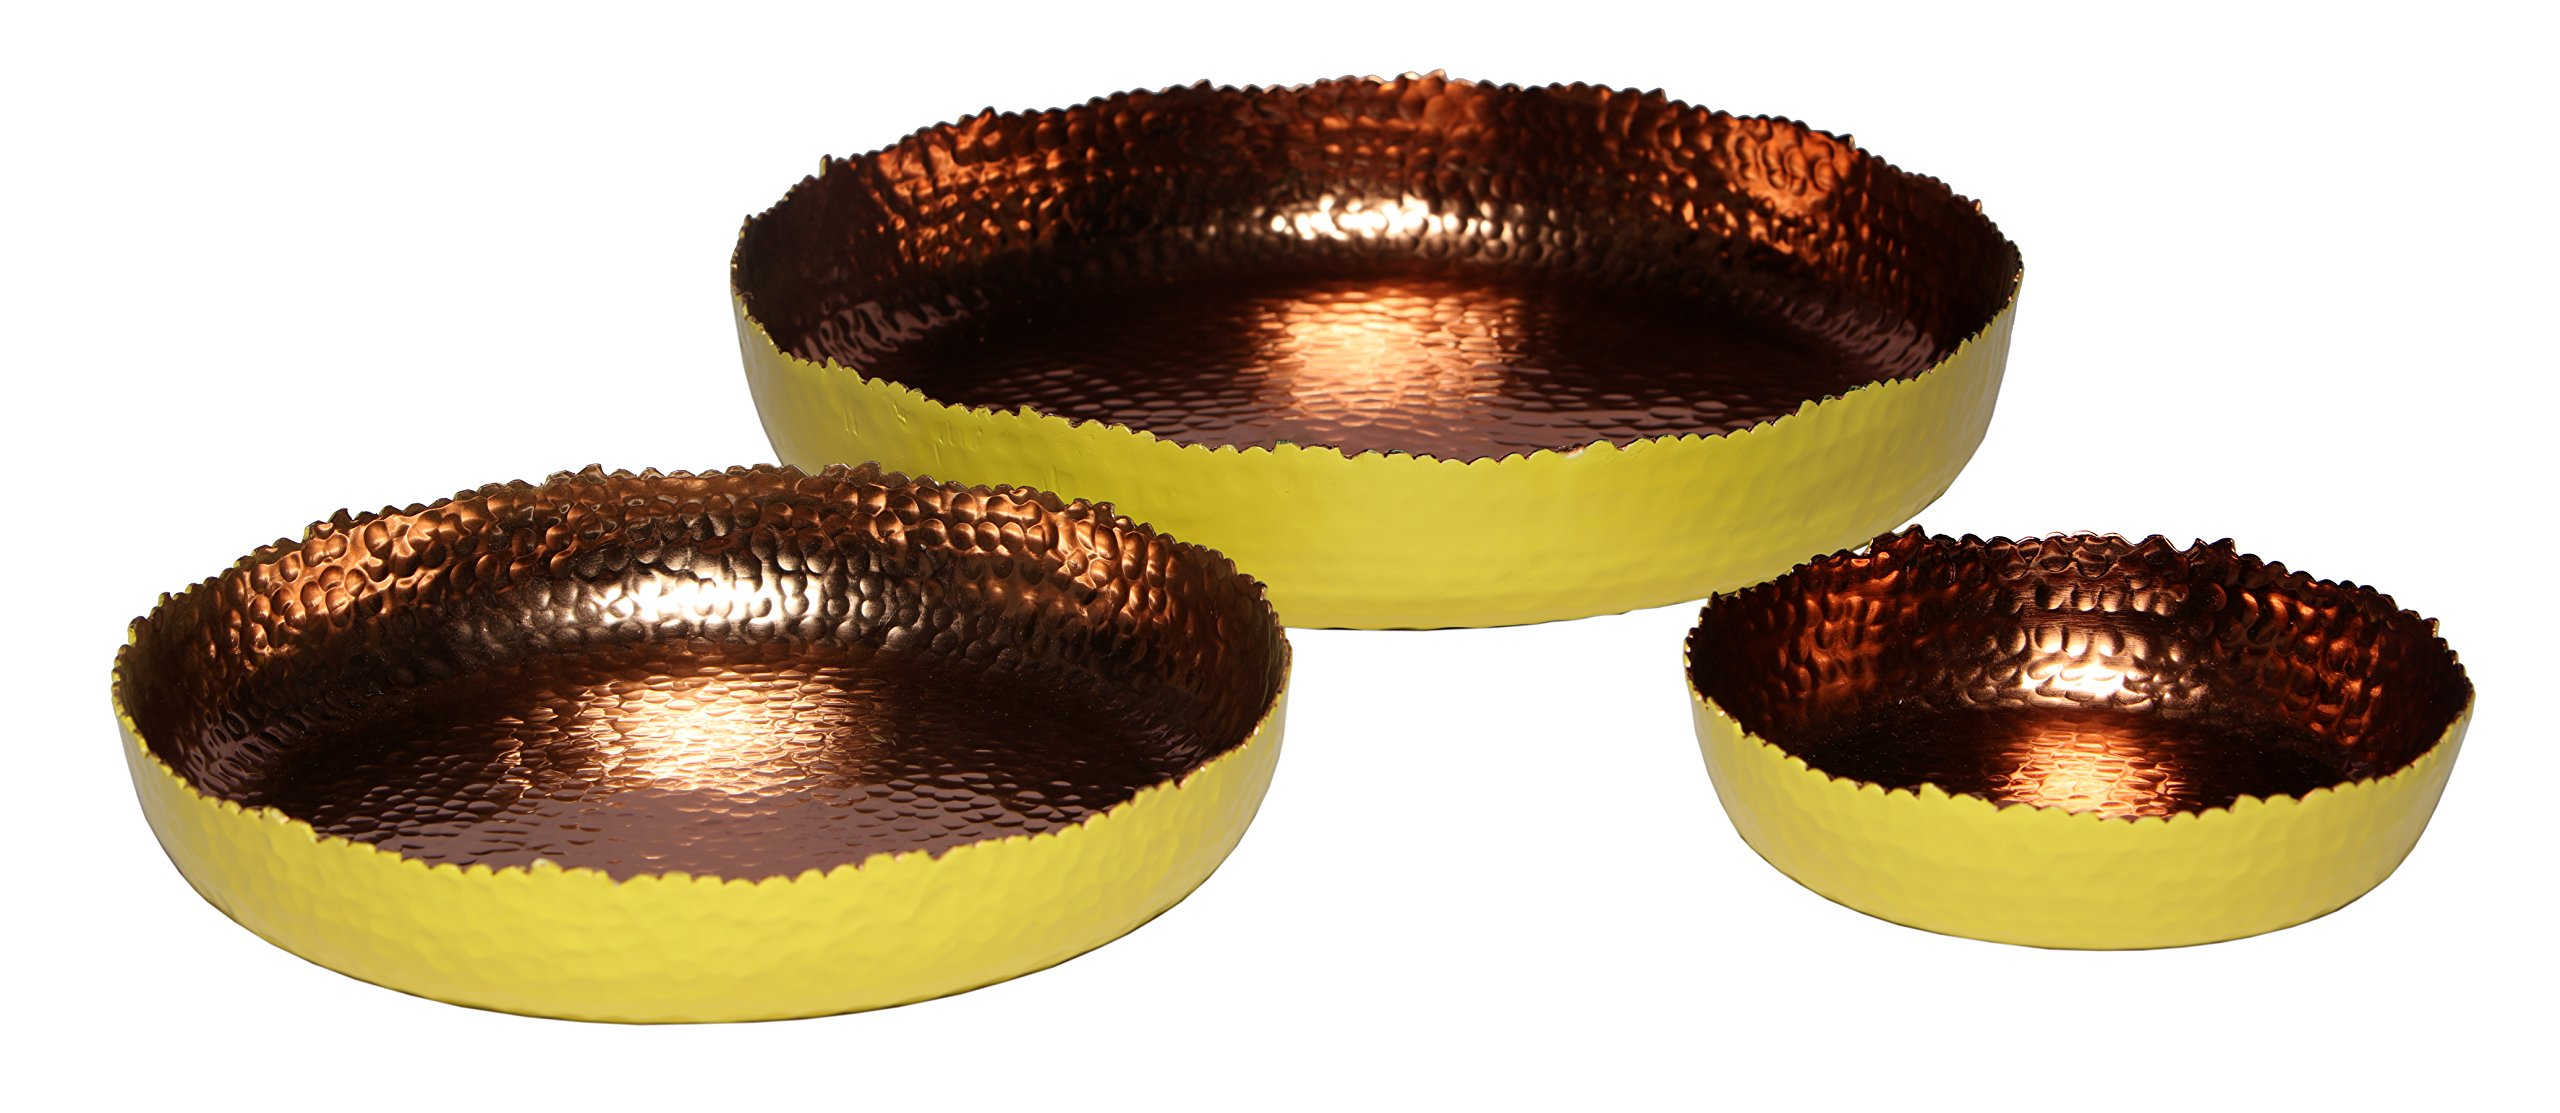 Melange Home Decor Cuivre Collection, Set of 3 Round Platters - 6'', 9'' and 12'', Color - Sunflower